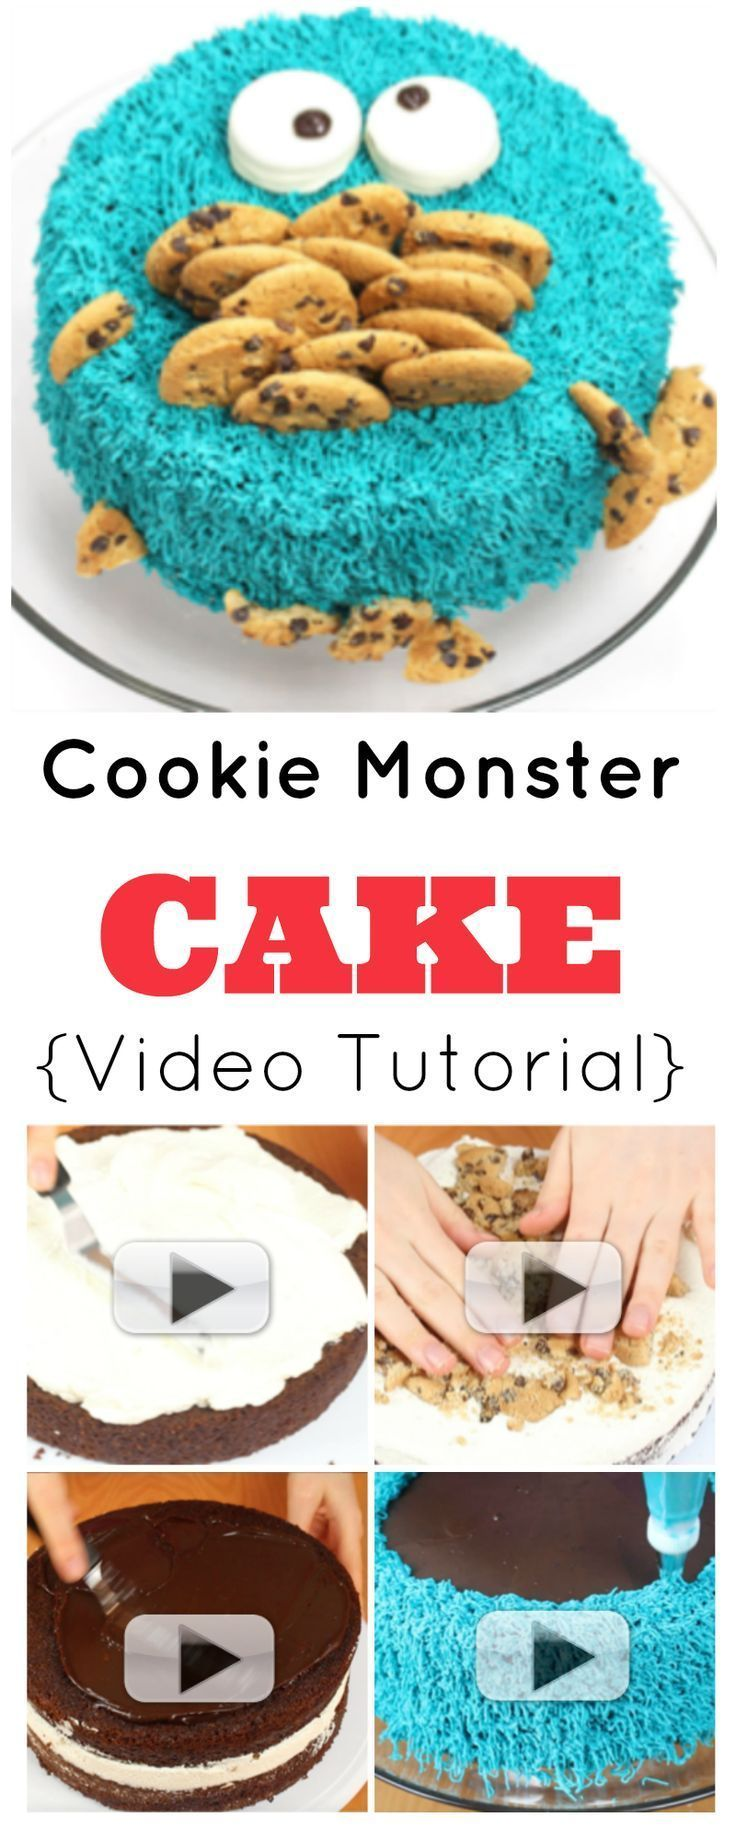 Cookie Monster Cake {Video Tutorial} | How to make a super-silly Cookie Monster Cake! This is perfect for birthdays and baby showers. Moist chocolate cake, cream, cookies, choc ganache & butter cream icing! | http://angelfoods.net/cookie-monster-cake-vide